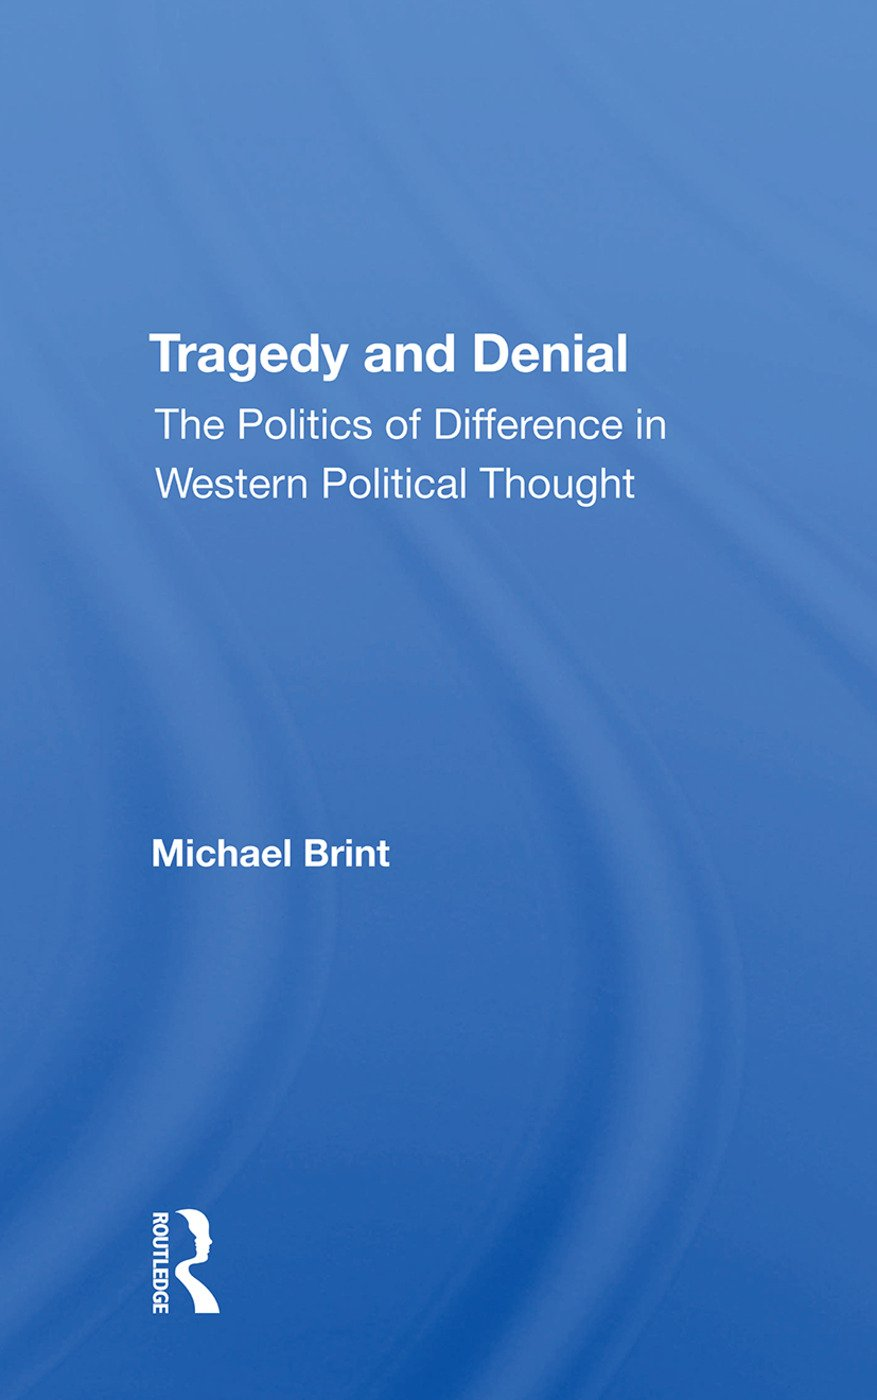 Tragedy And Denial: The Politics Of Difference In Western Political Thought book cover